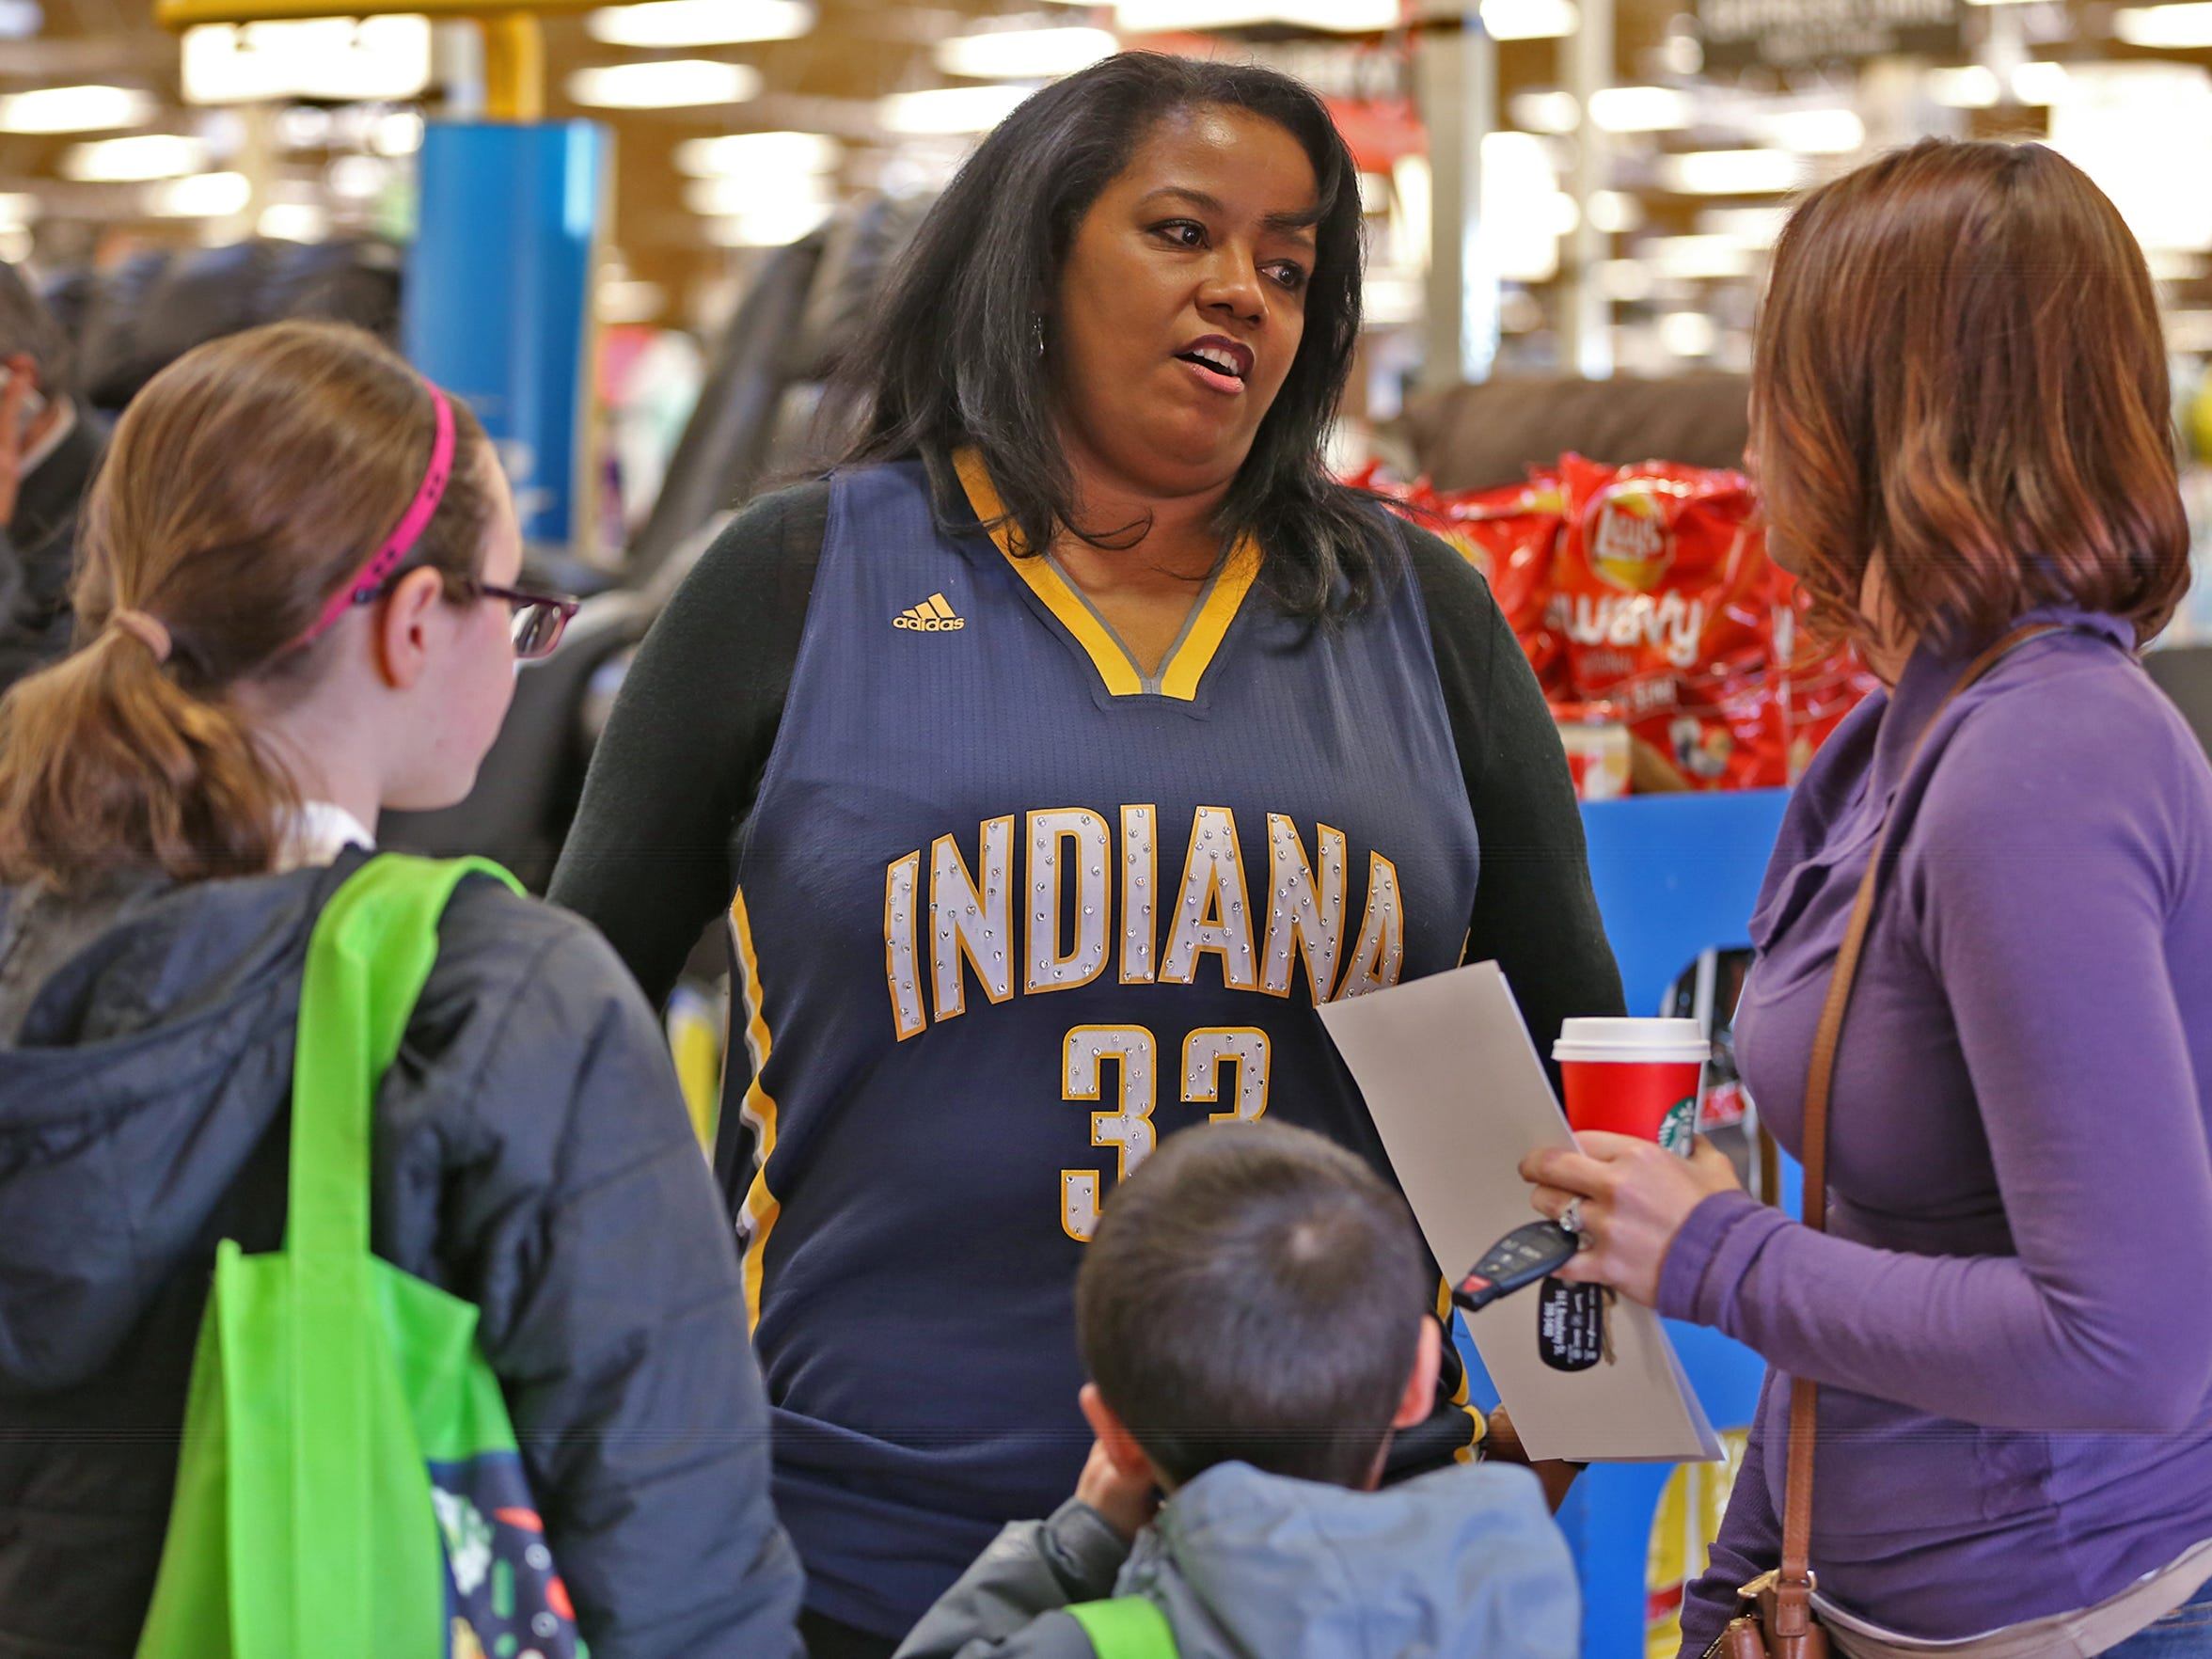 Mary Turner talks to fans during an autograph session with her son, Myles Turner at Kroger, Friday, January 29, 2016, promoting his WARM (We All Really Matter) program.